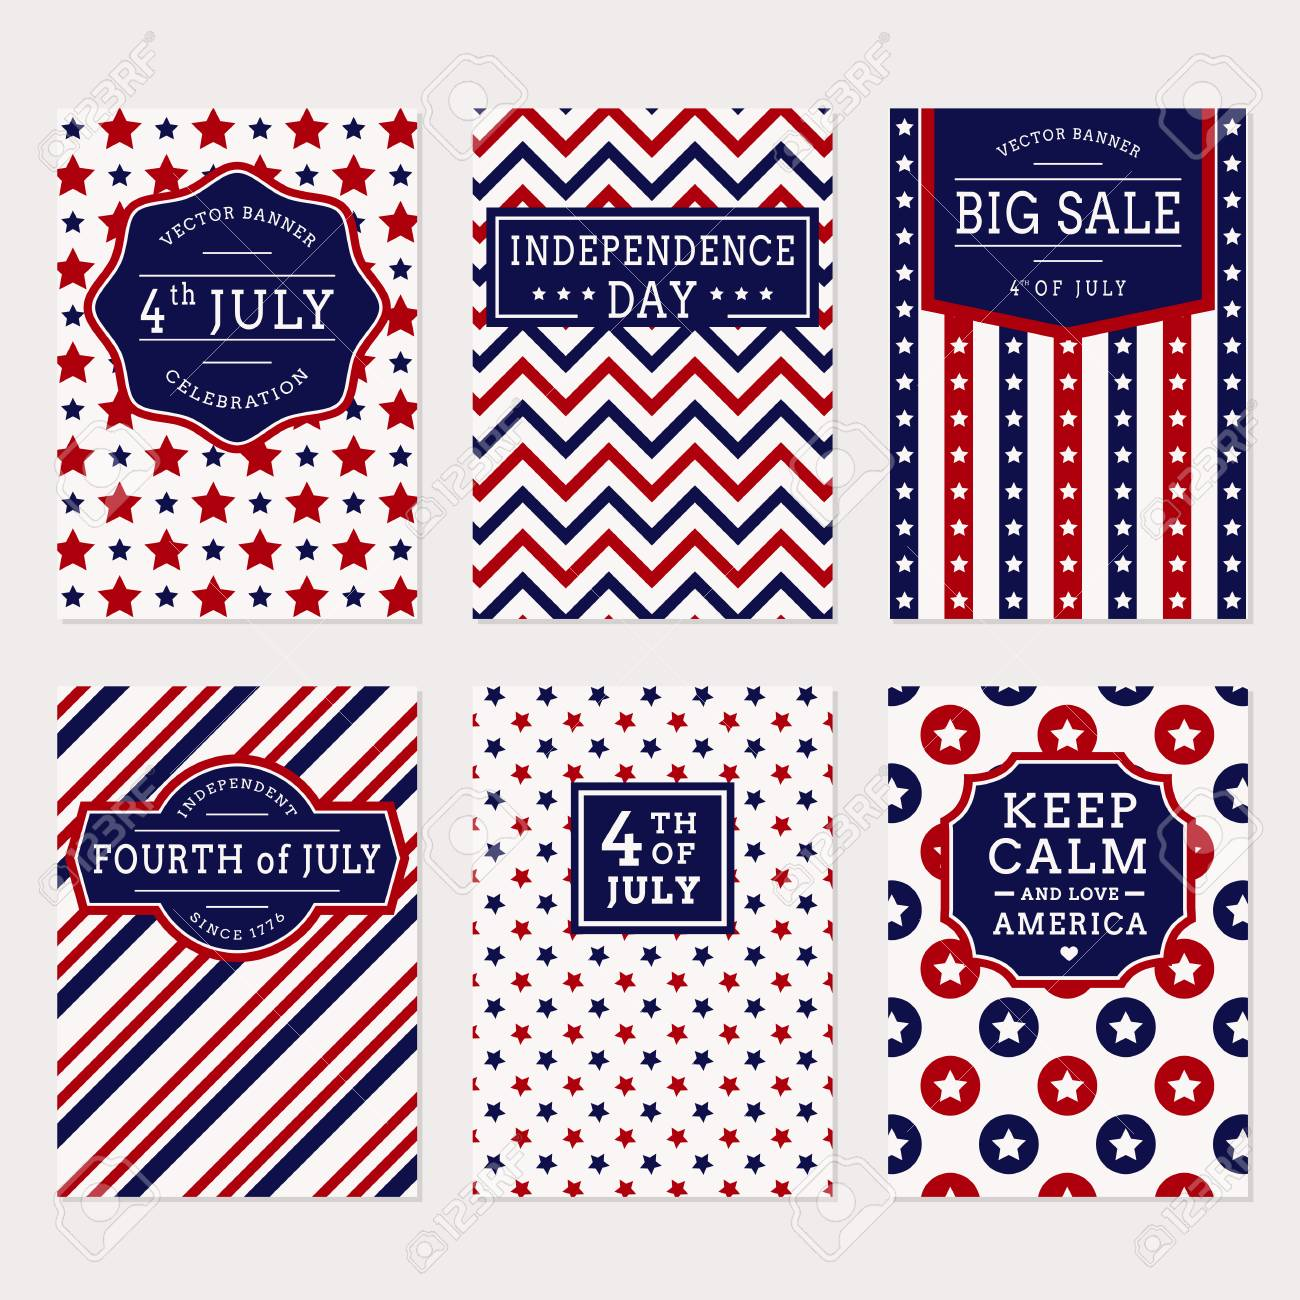 Happy Independence Day Set Of American Banners For 4th Of July